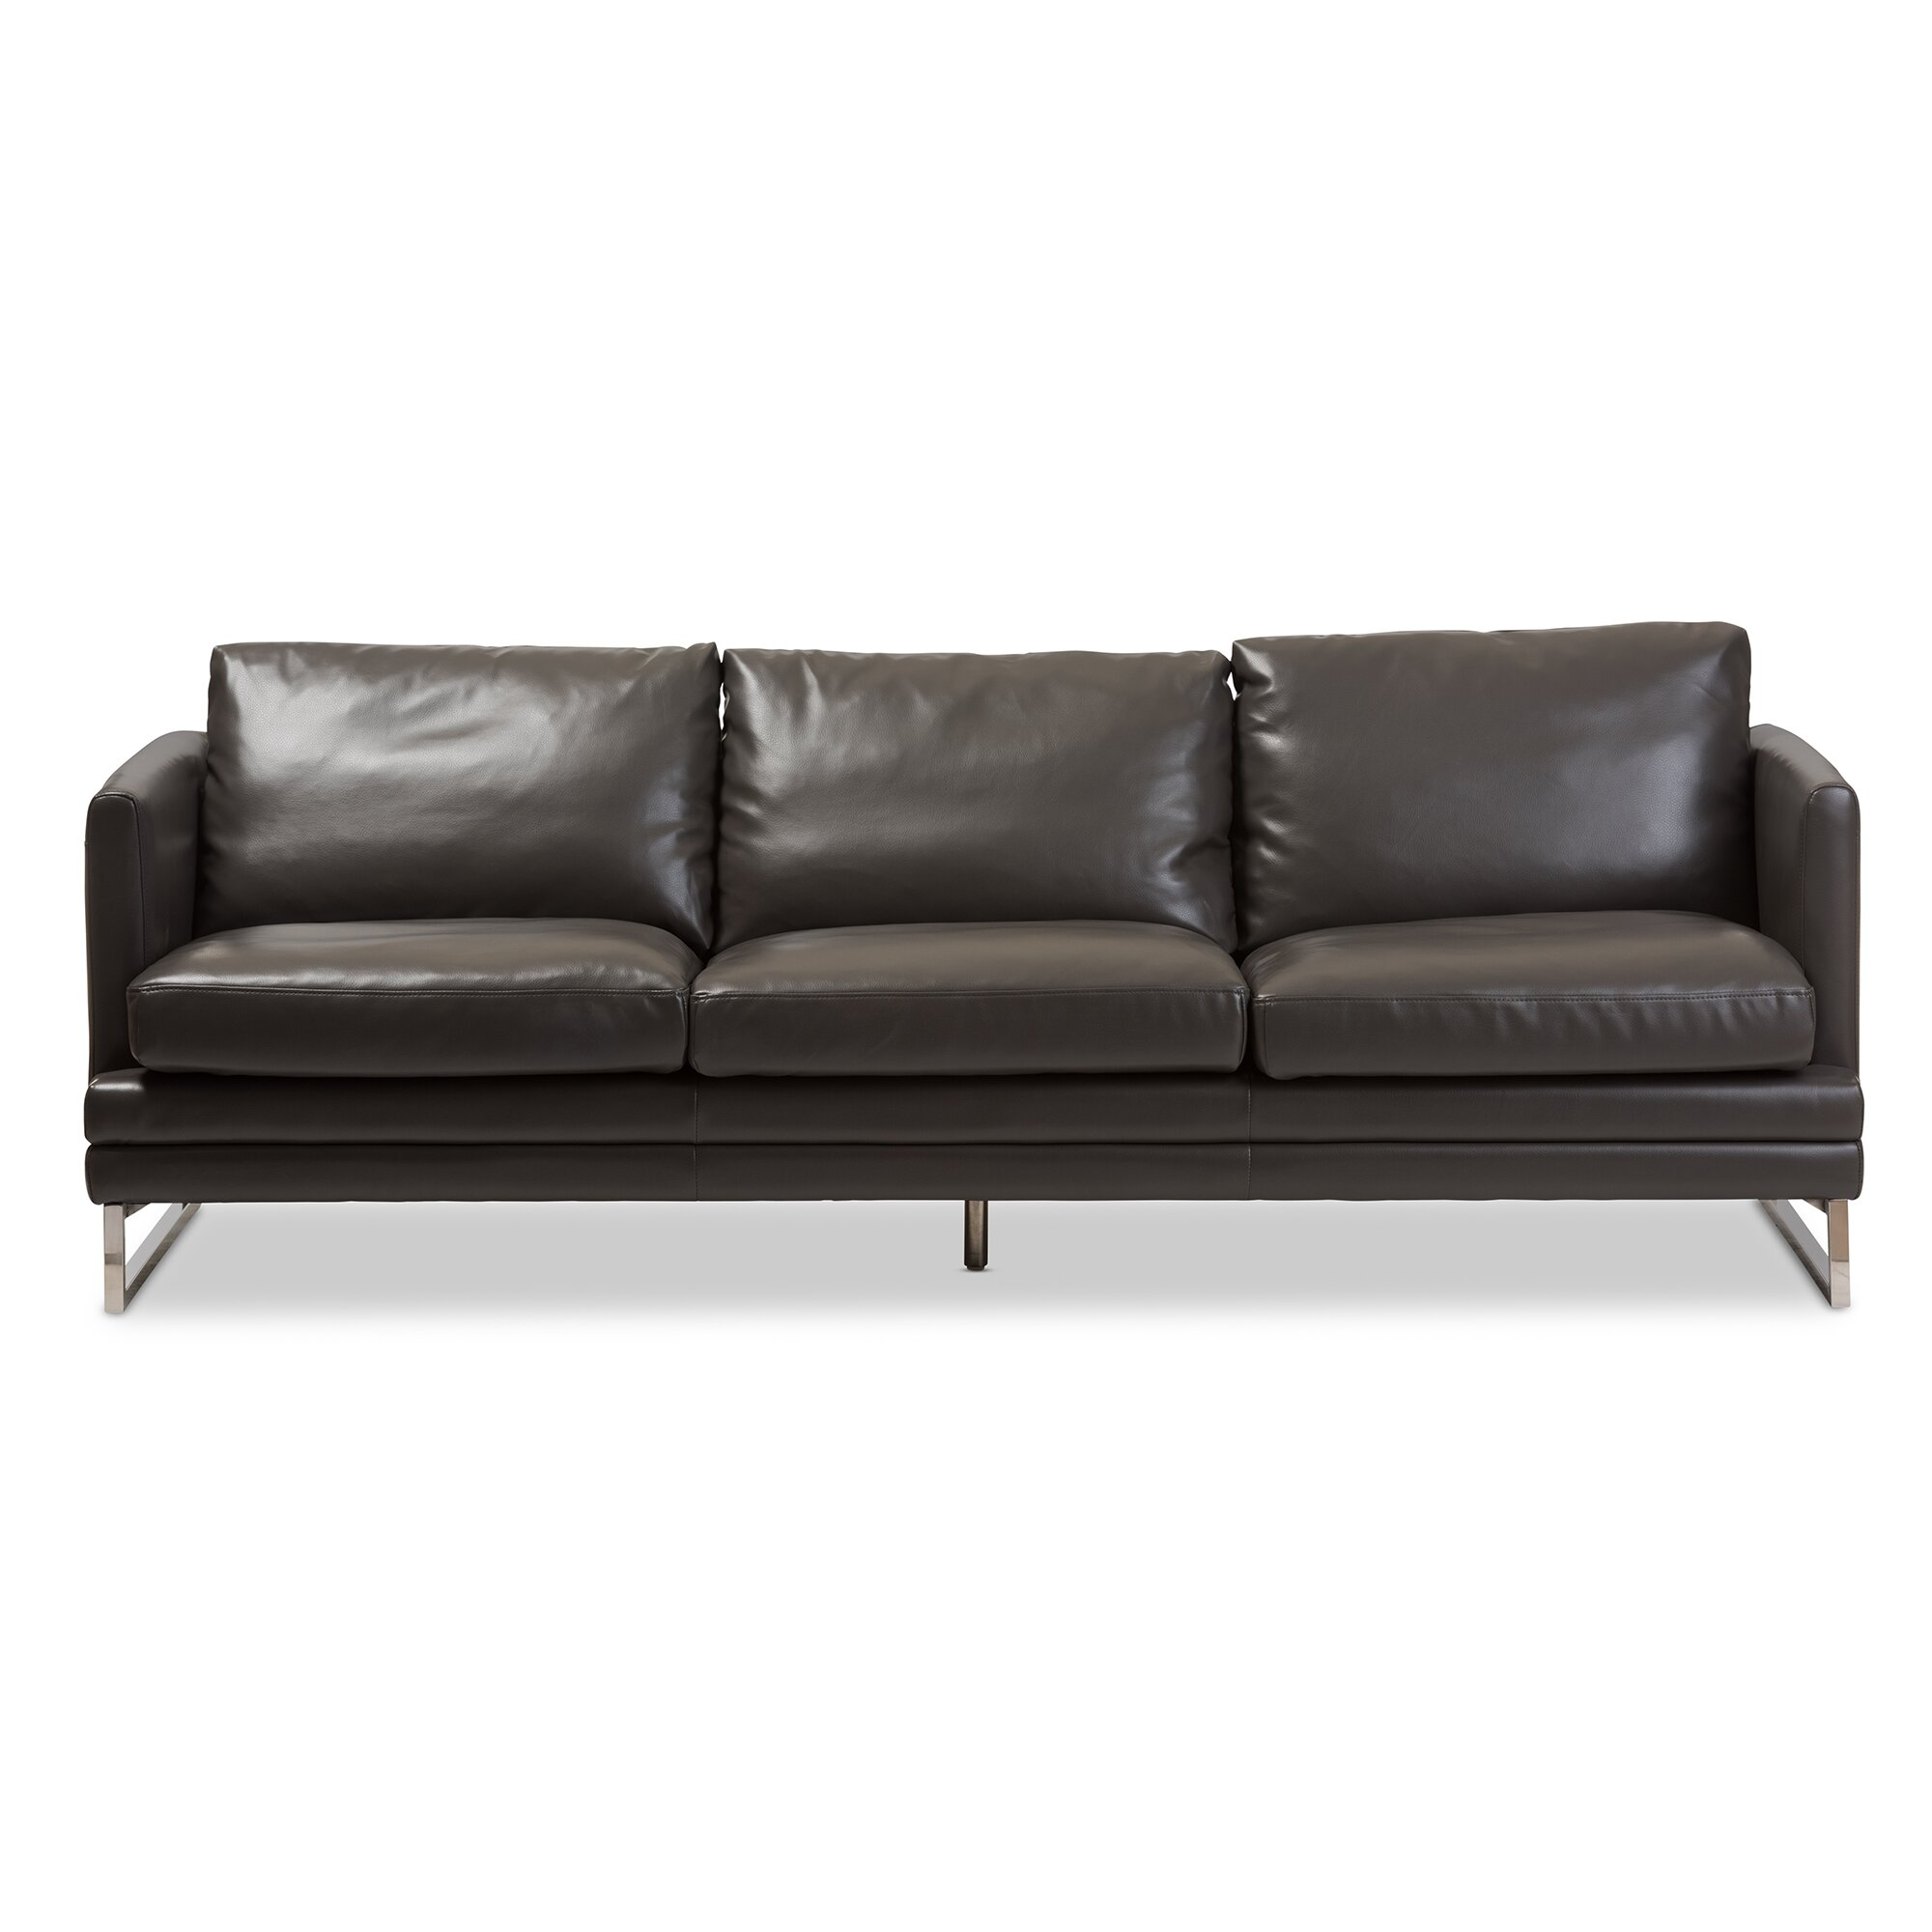 Wholesale Interiors Baxton Studio Dakota Leather Sofa Reviews Wayfair